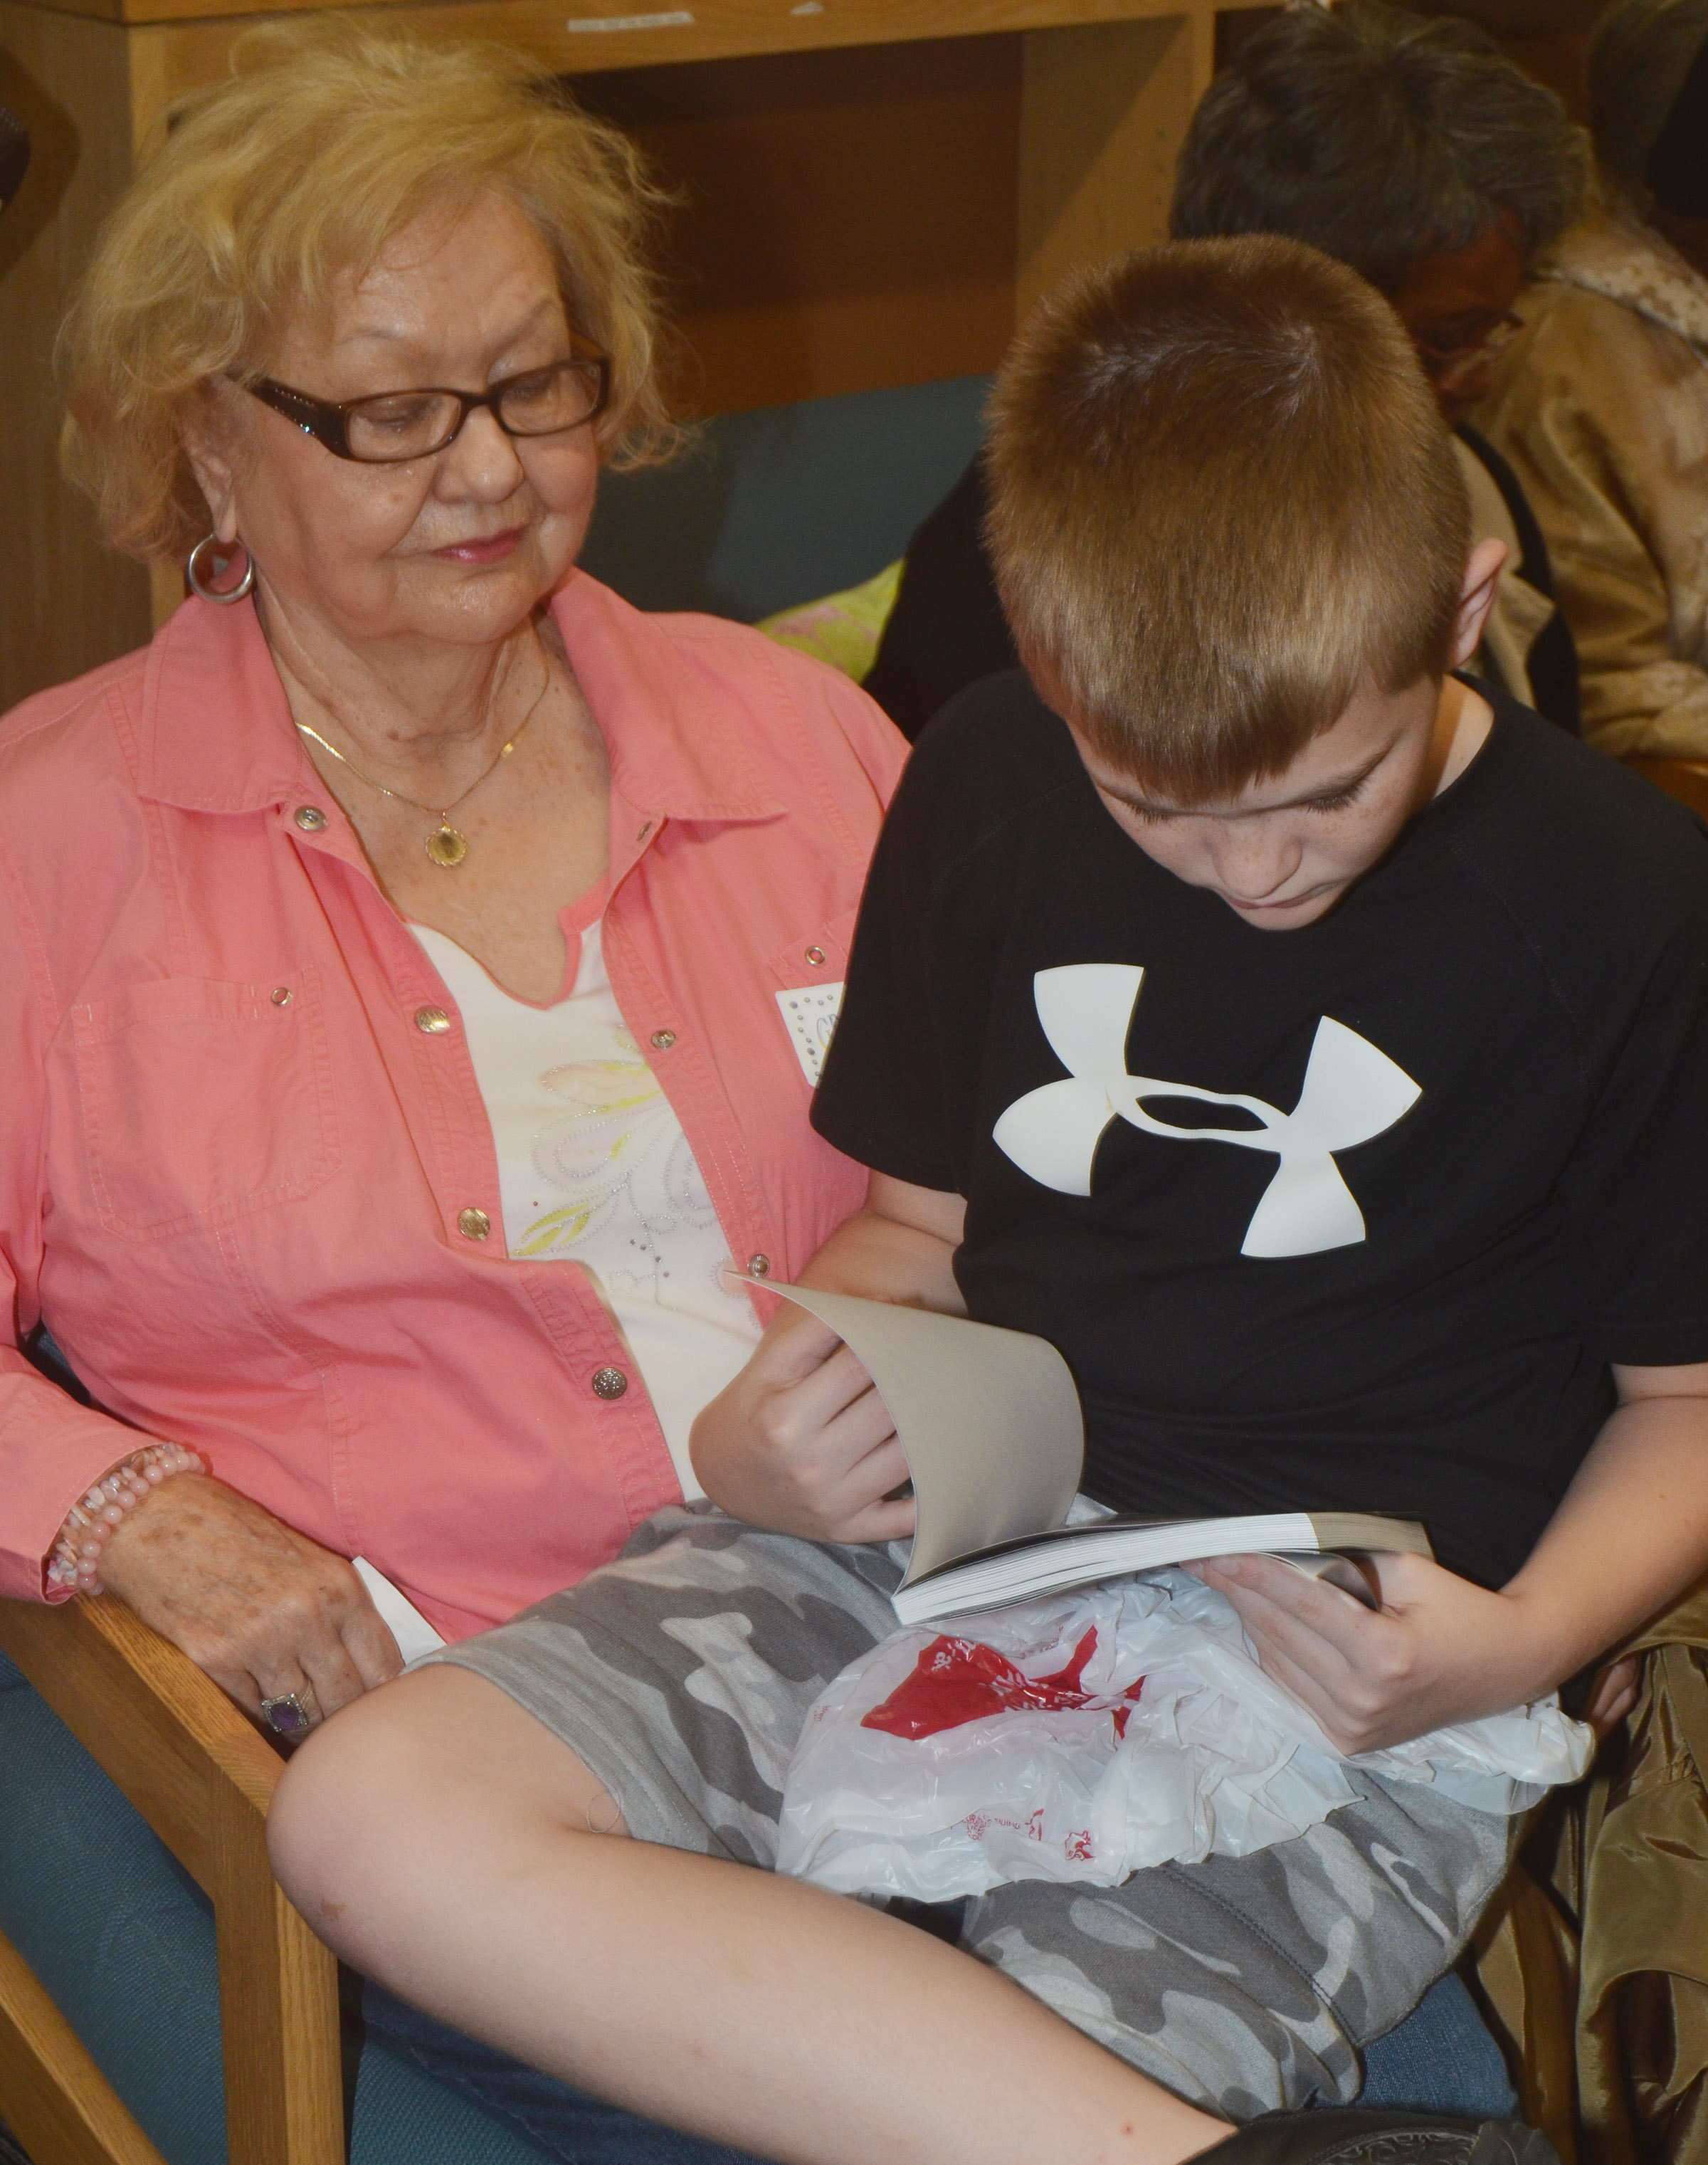 CES fourth-grader Cash Cowan reads with his grandmother.